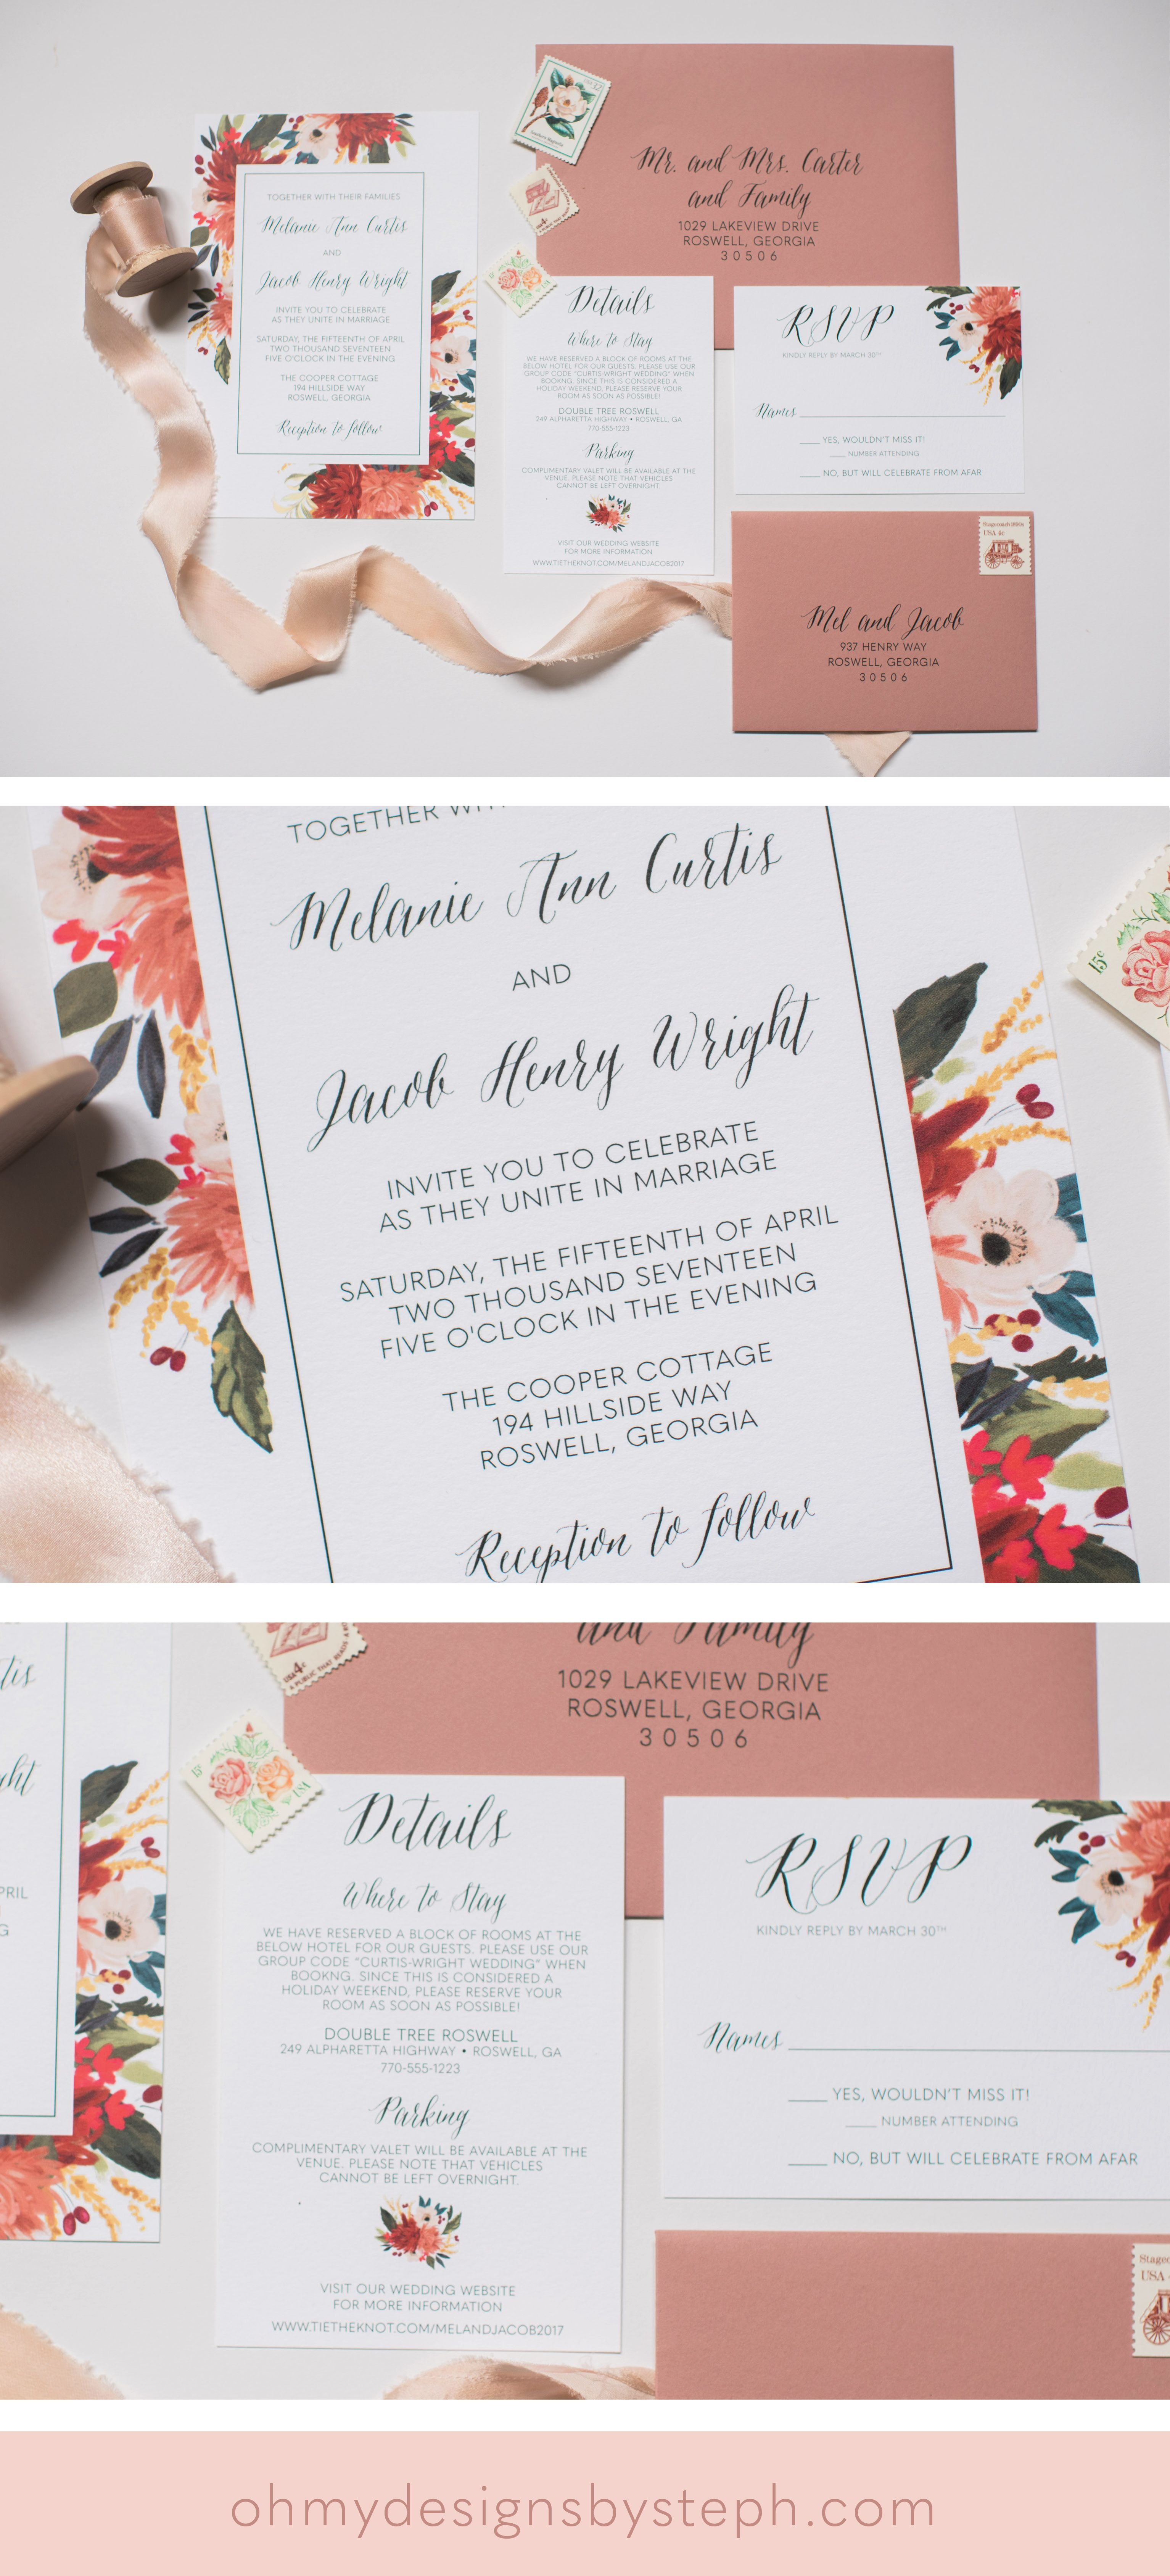 Dusty Rose Floral Wedding Invitations by oh my designs | Invitations ...